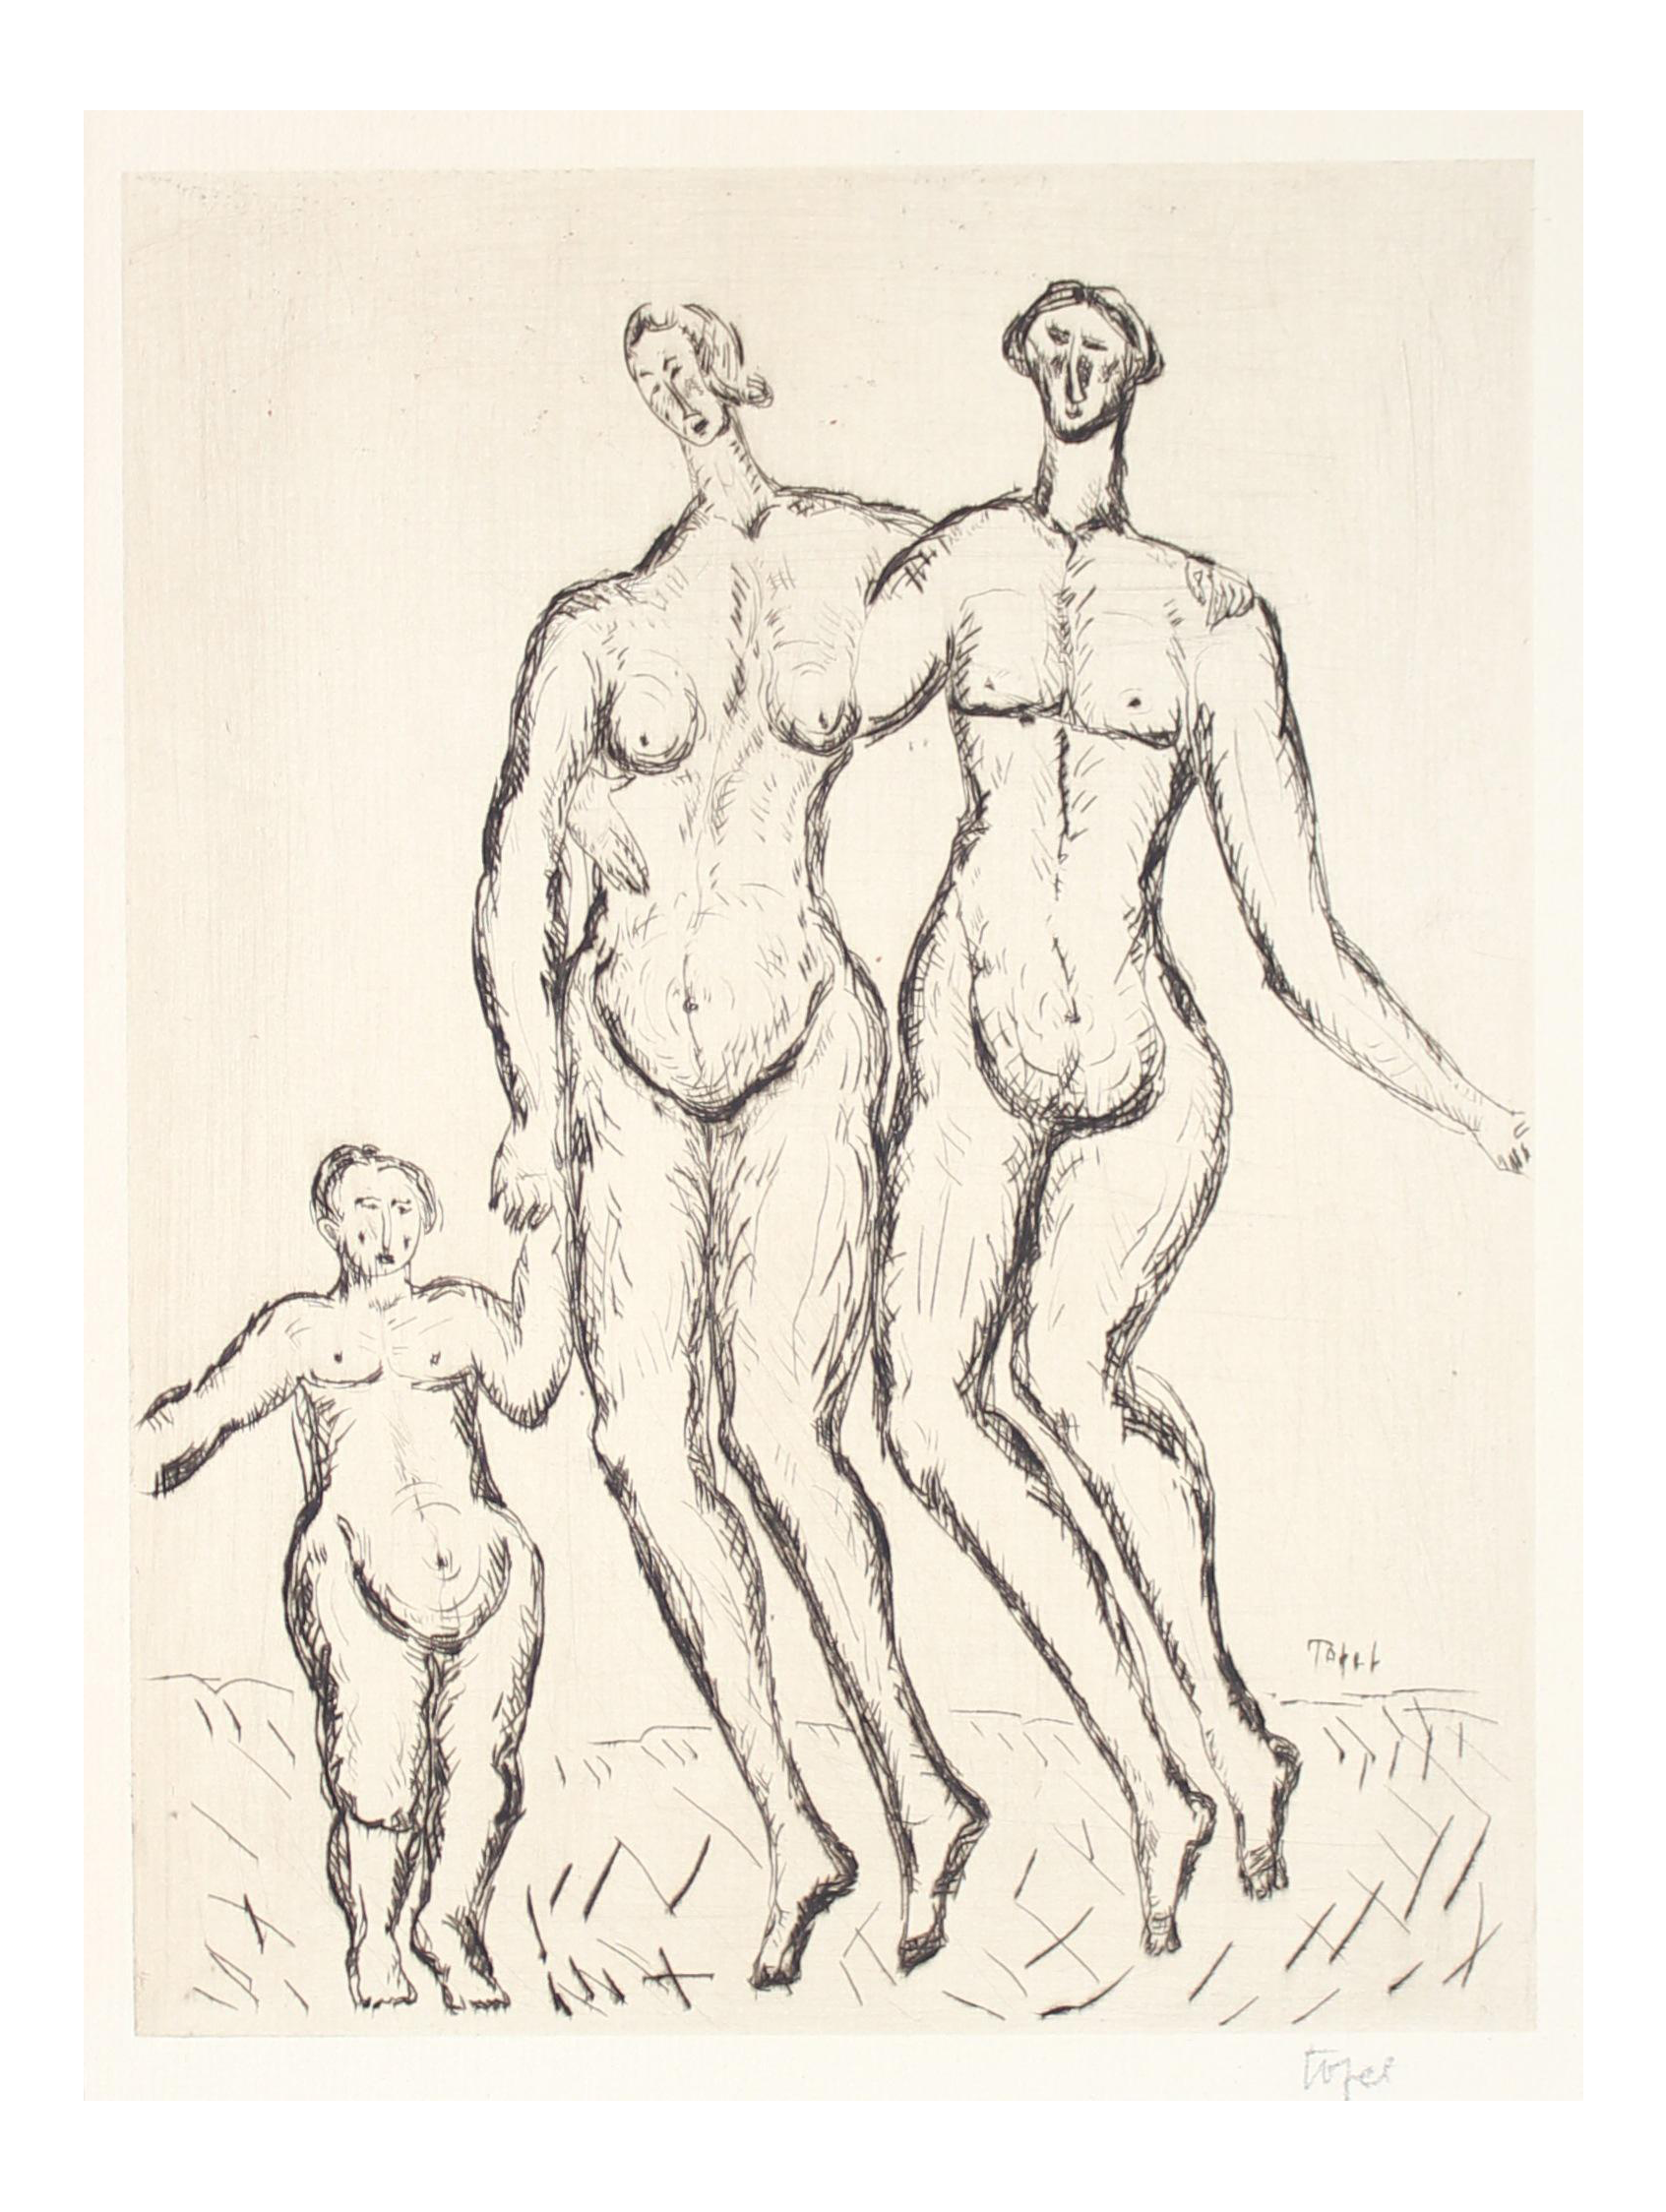 Expressionism drawing figure. Expressionist figures with child